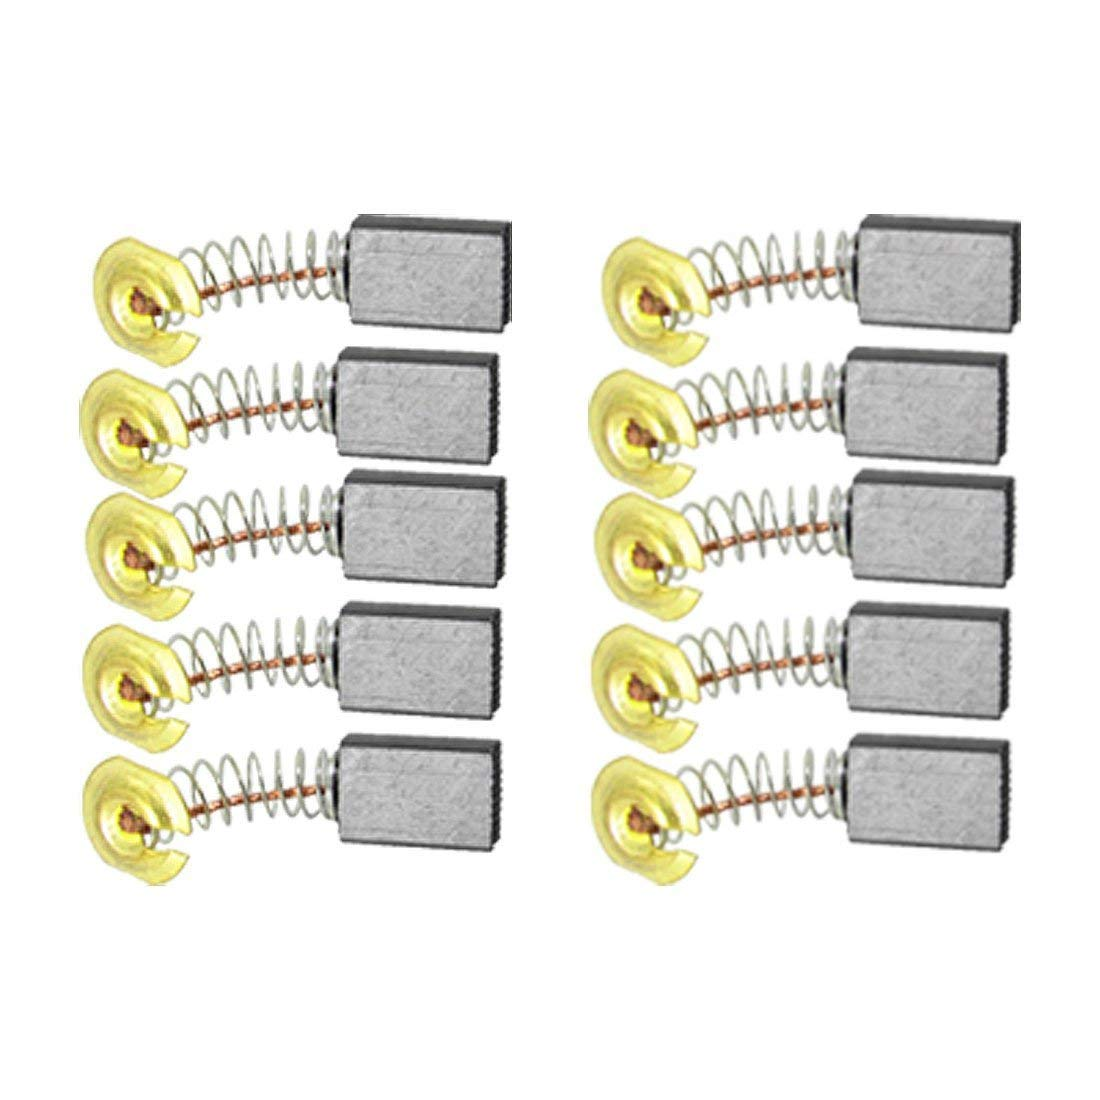 Brushes & Dusters uxcell50 Pcs Carbon Electric Motor Brushes 16mm x 11mm x 7mm For Bosch Drill